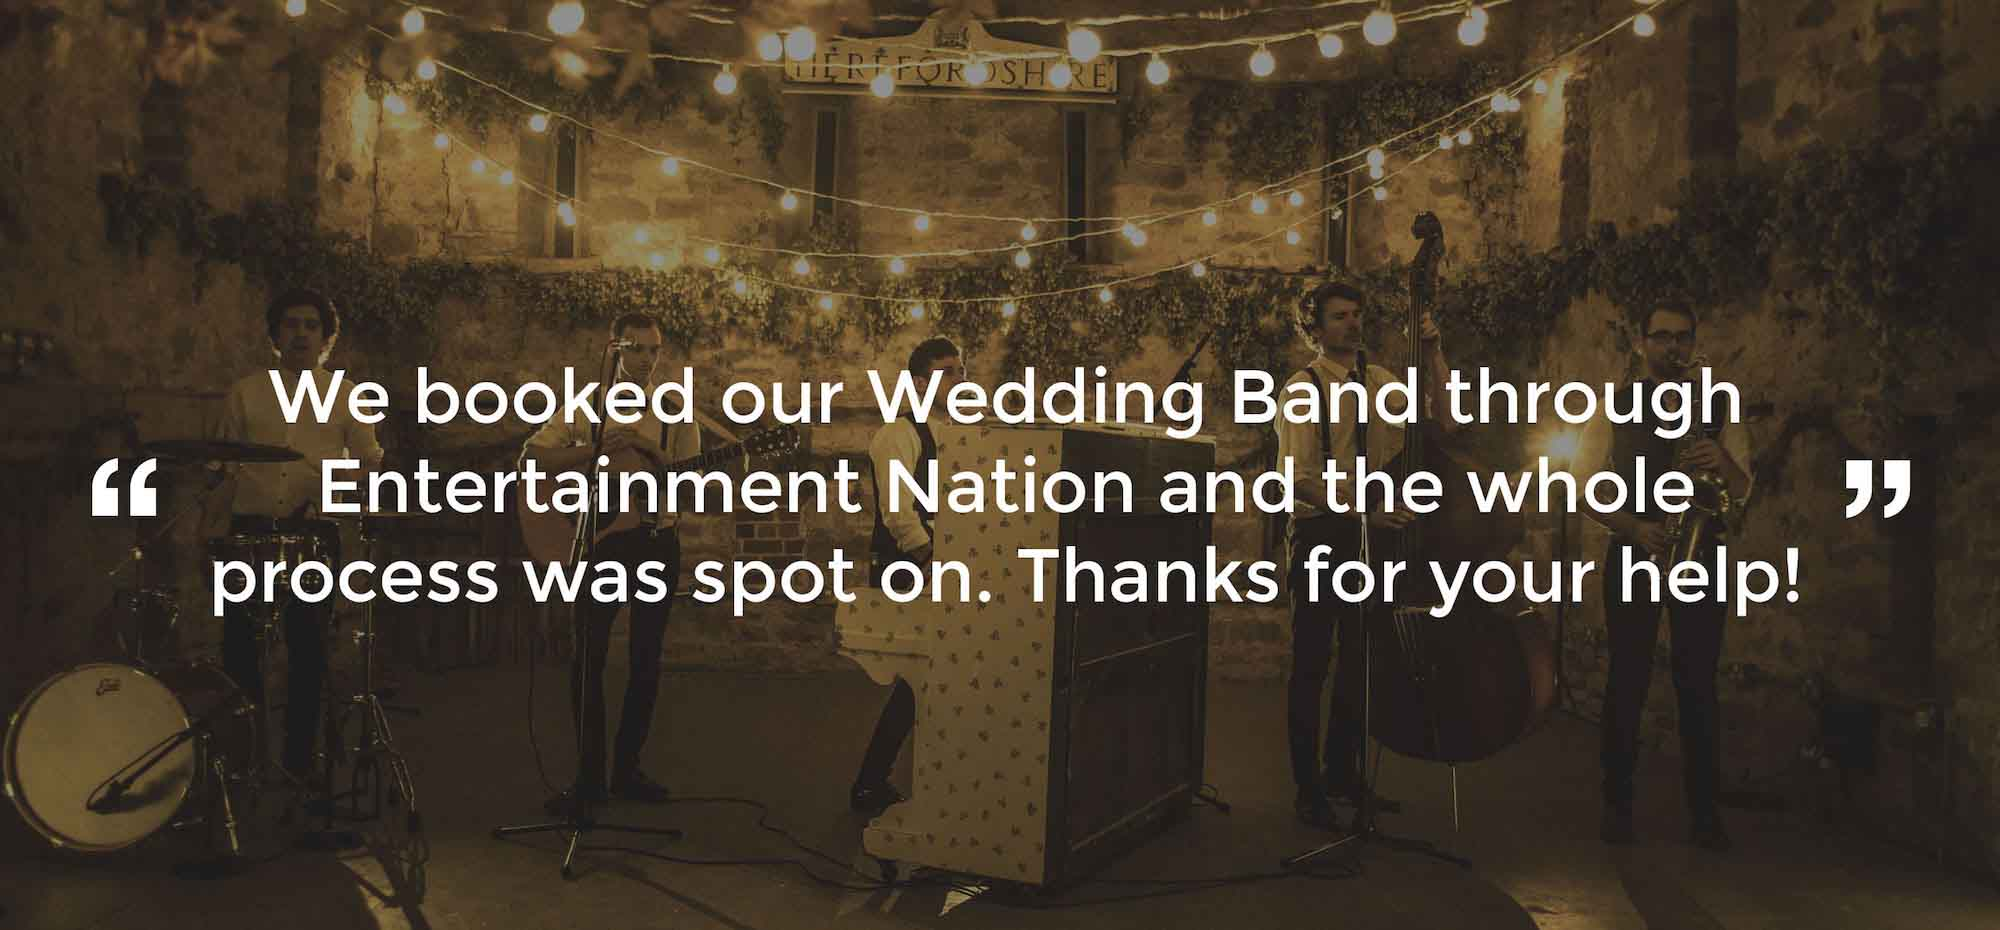 Client Review of a Wedding Band Warwickshire